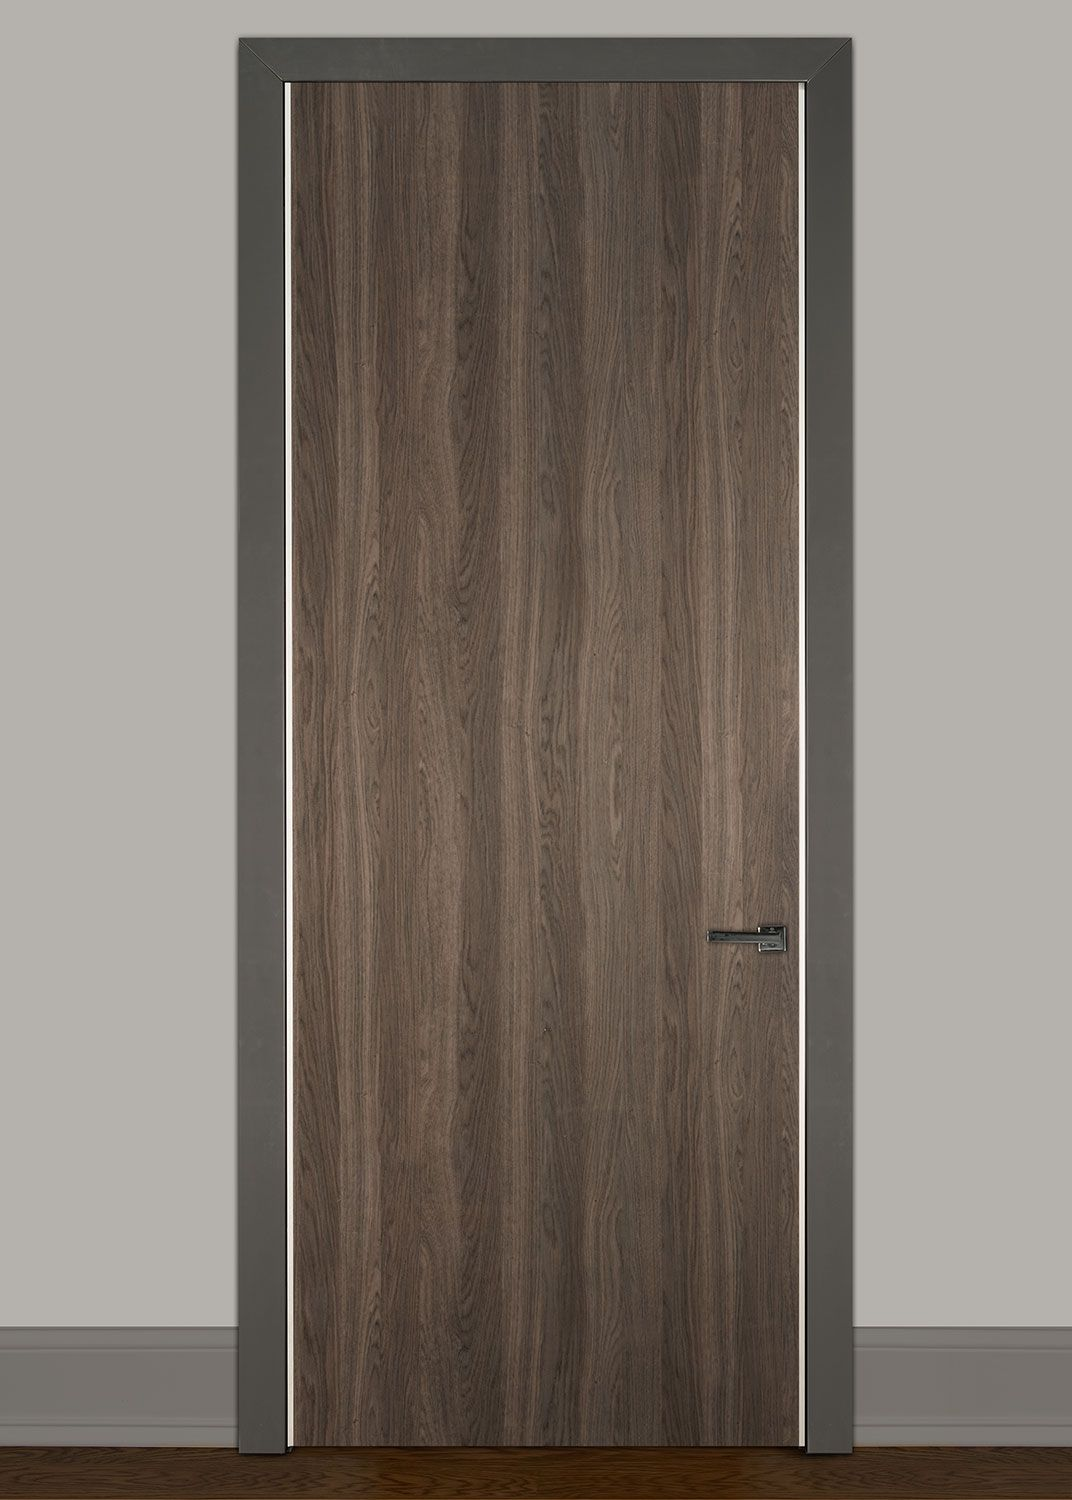 Interior door custom single wood veneer solid core with high interior door custom single wood veneer solid core with high gloss finish modern planetlyrics Image collections